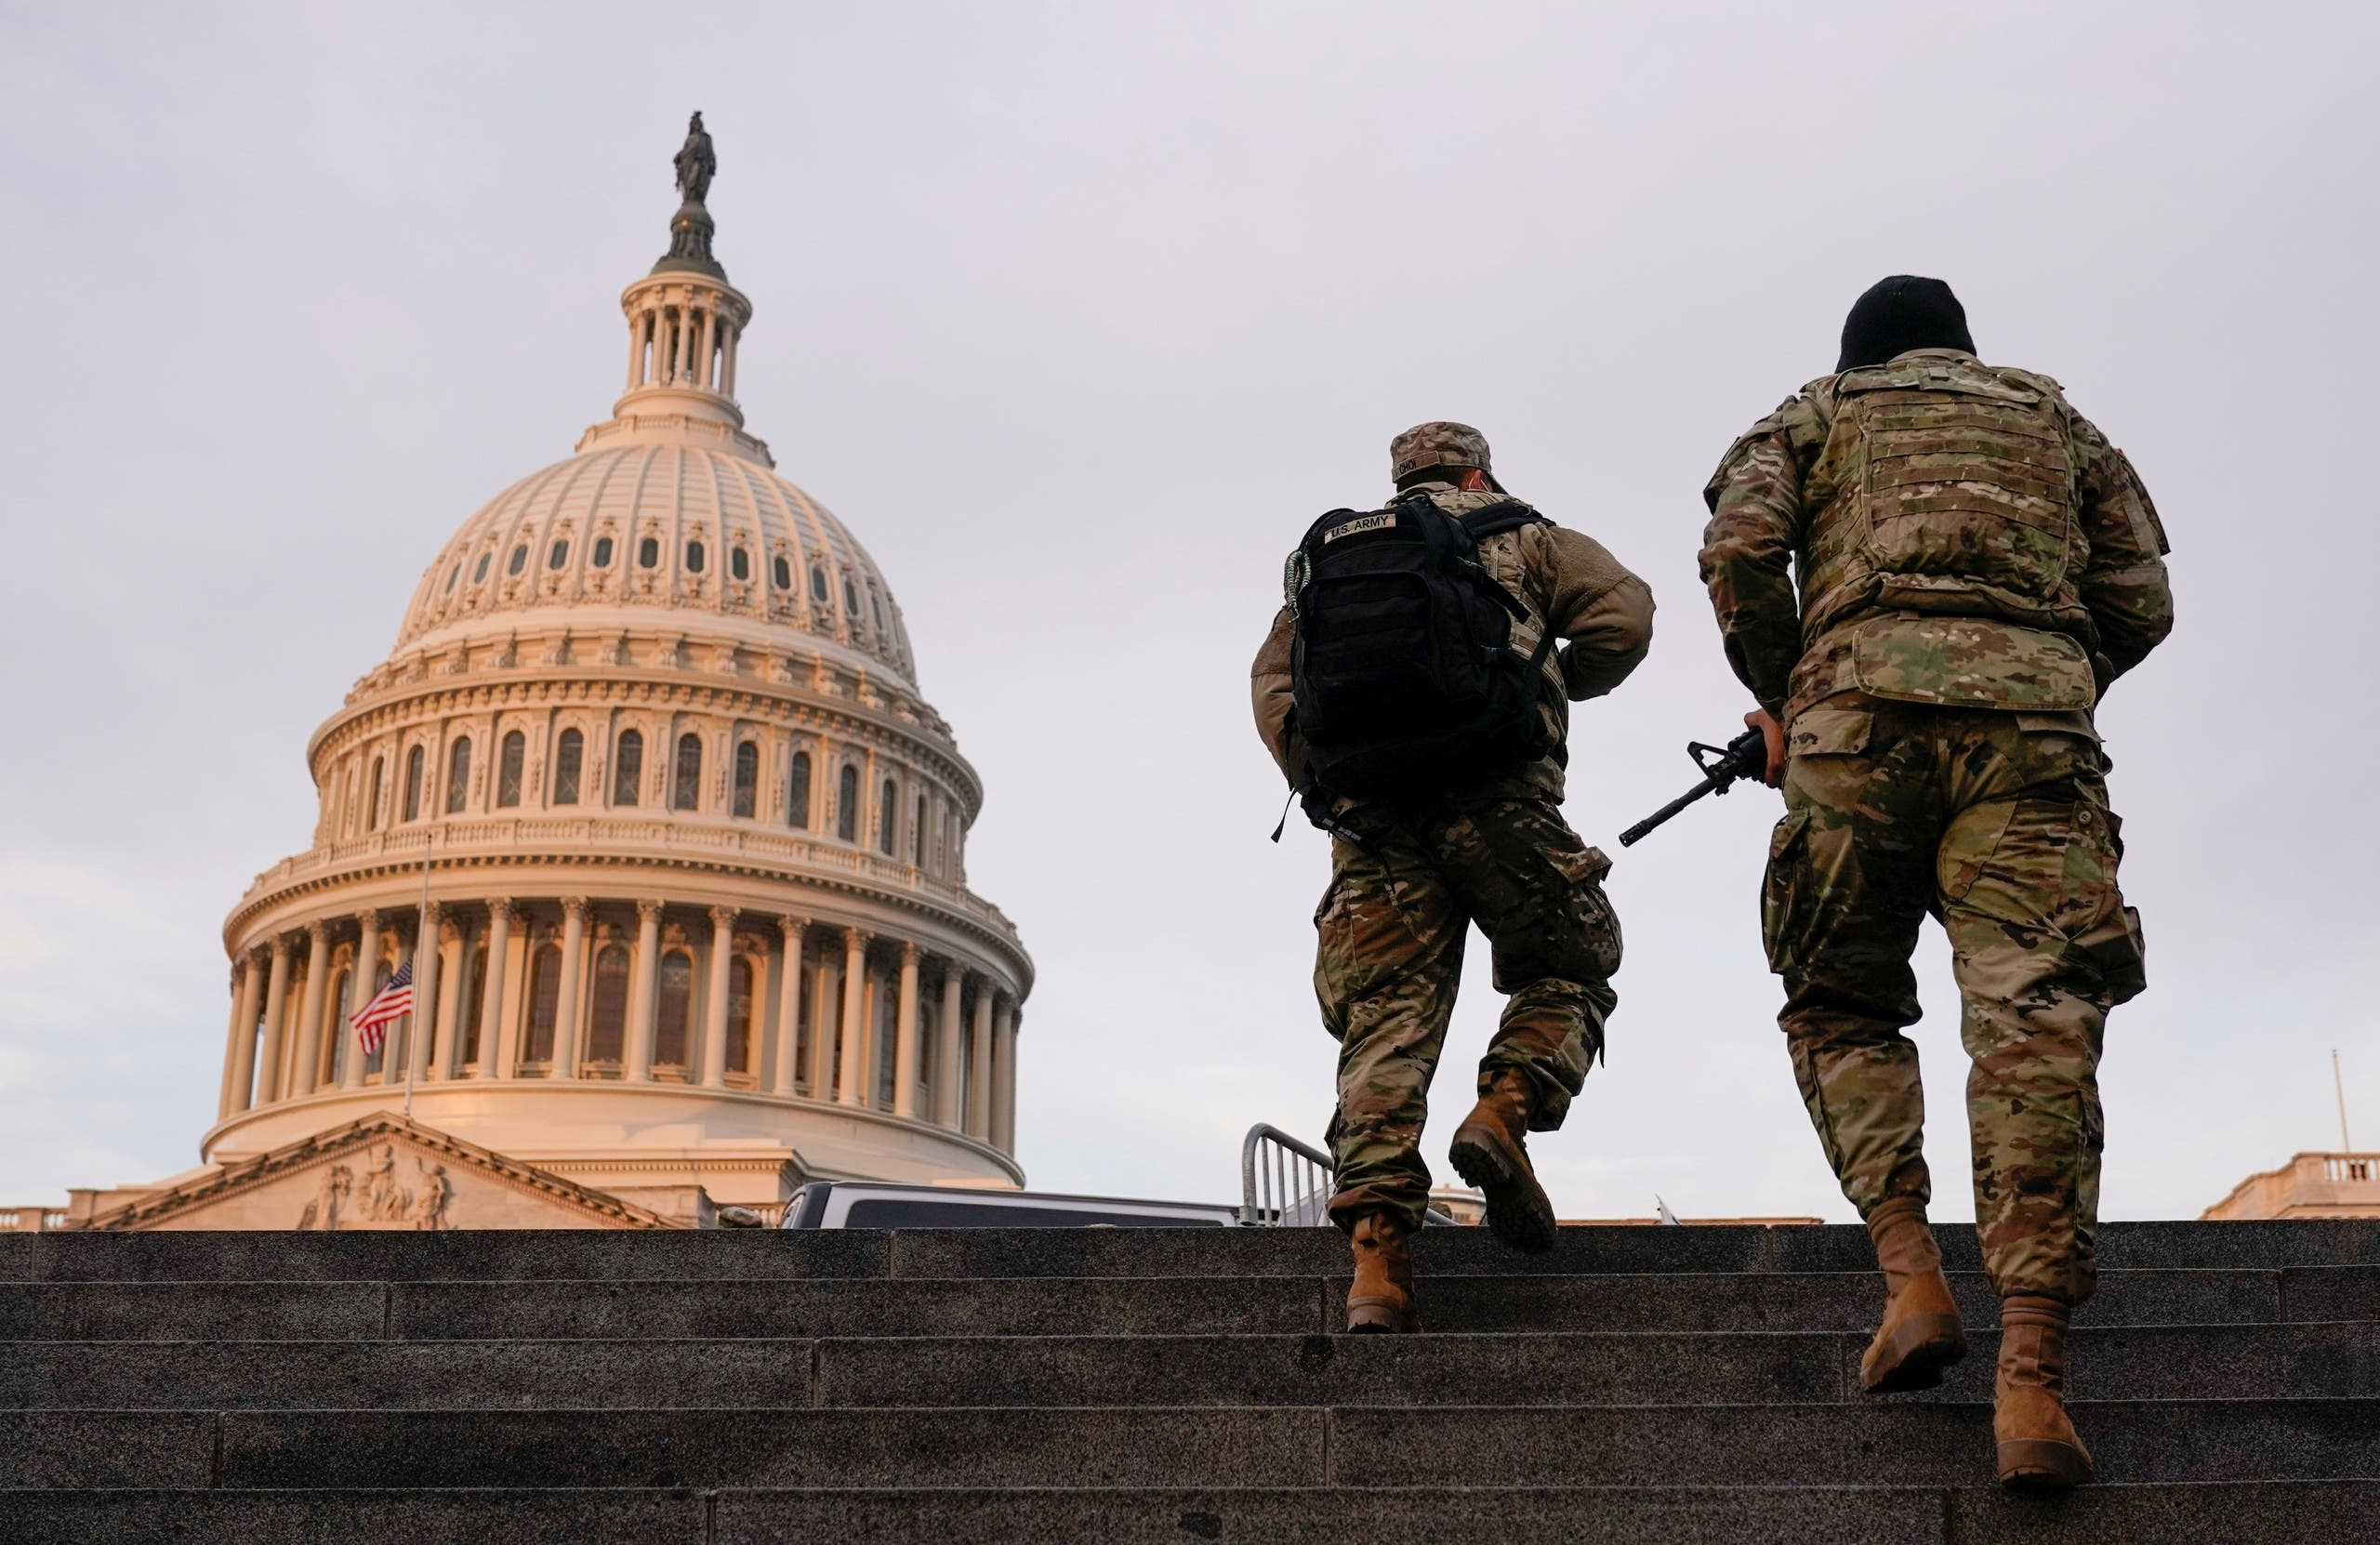 National Guard members walk at the Capitol, in Washington, US, January 15, 2021. (Reuters)